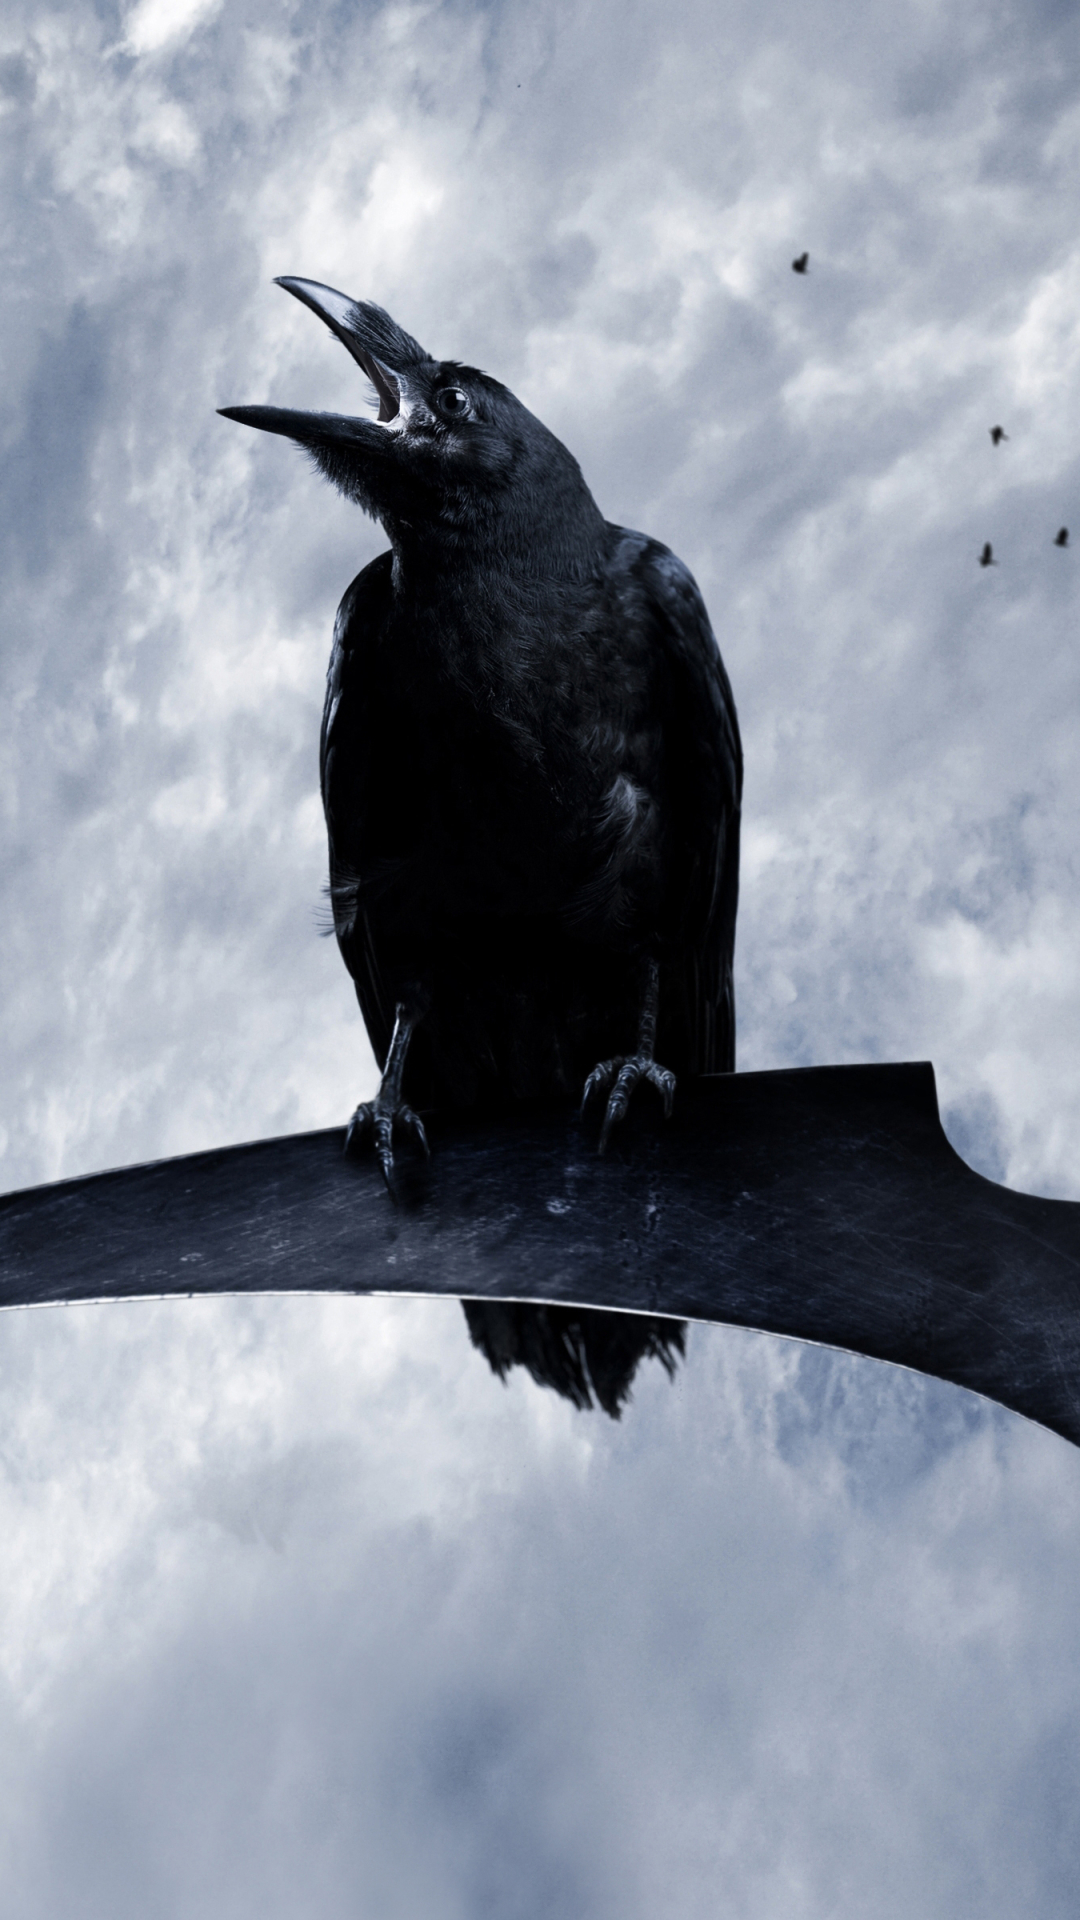 Animal Crow 1080x1920 Wallpaper ID 668274